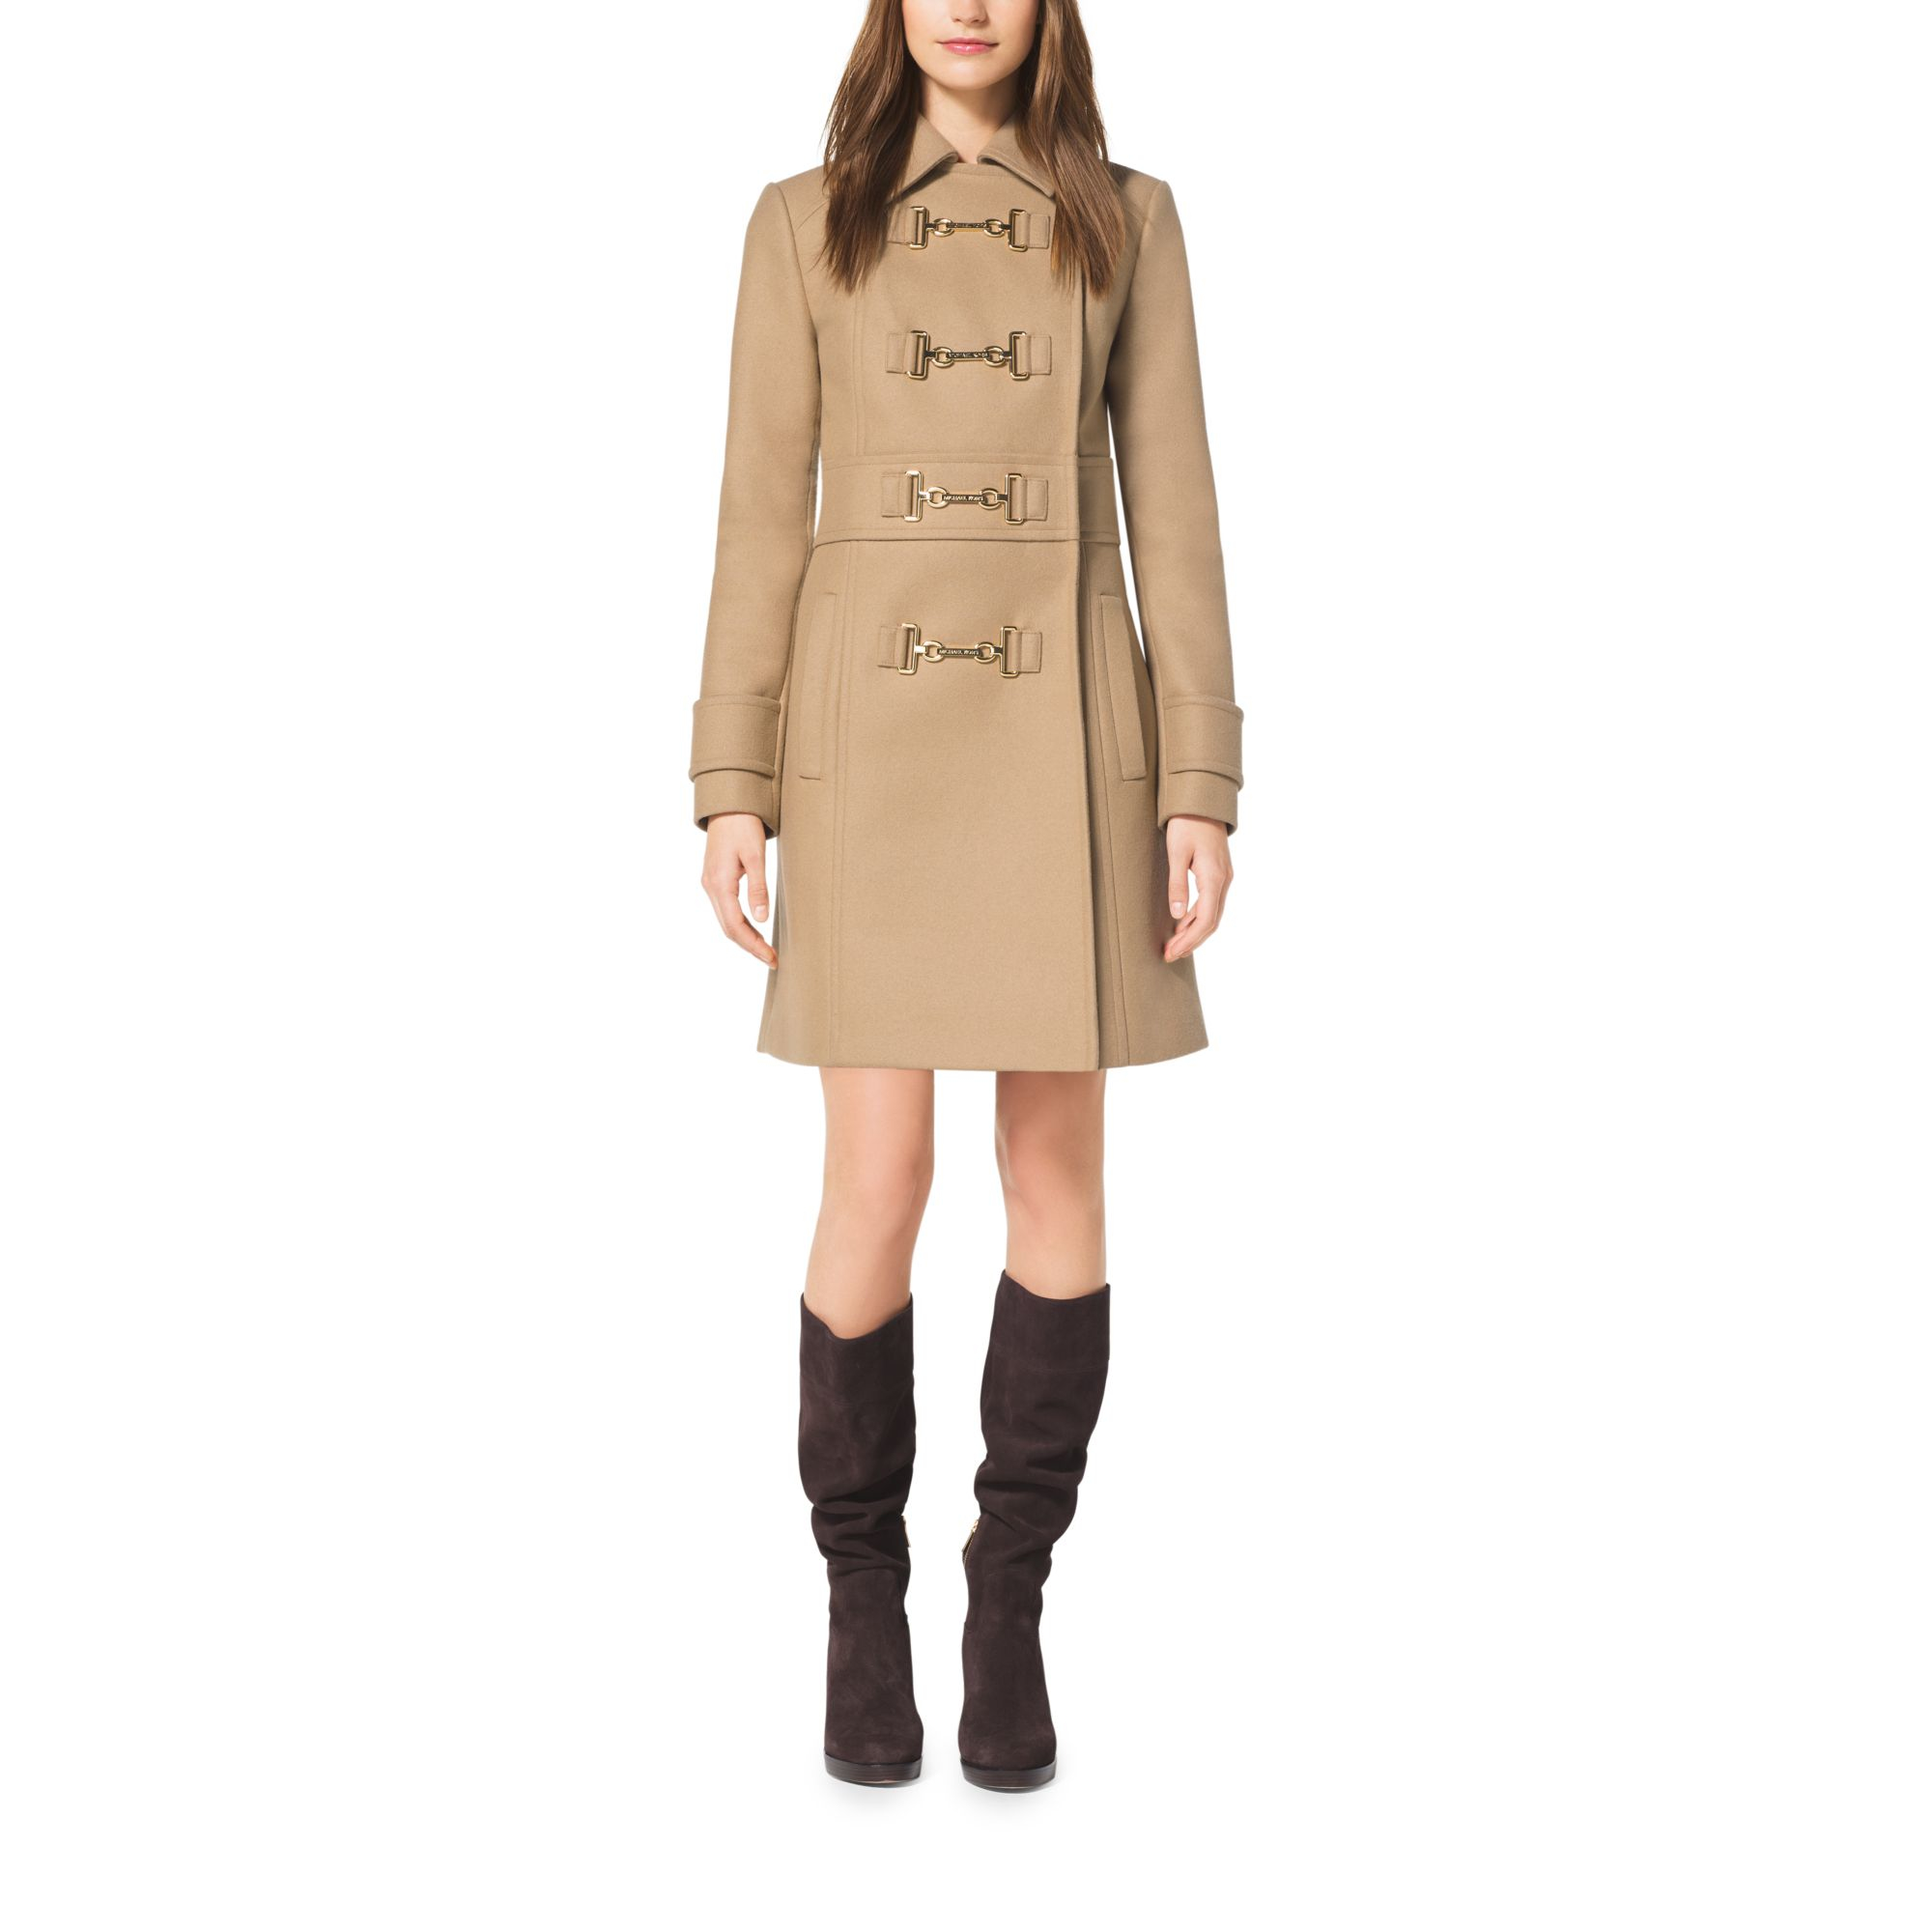 Michael kors Wool-melton Duffle Coat in Natural | Lyst